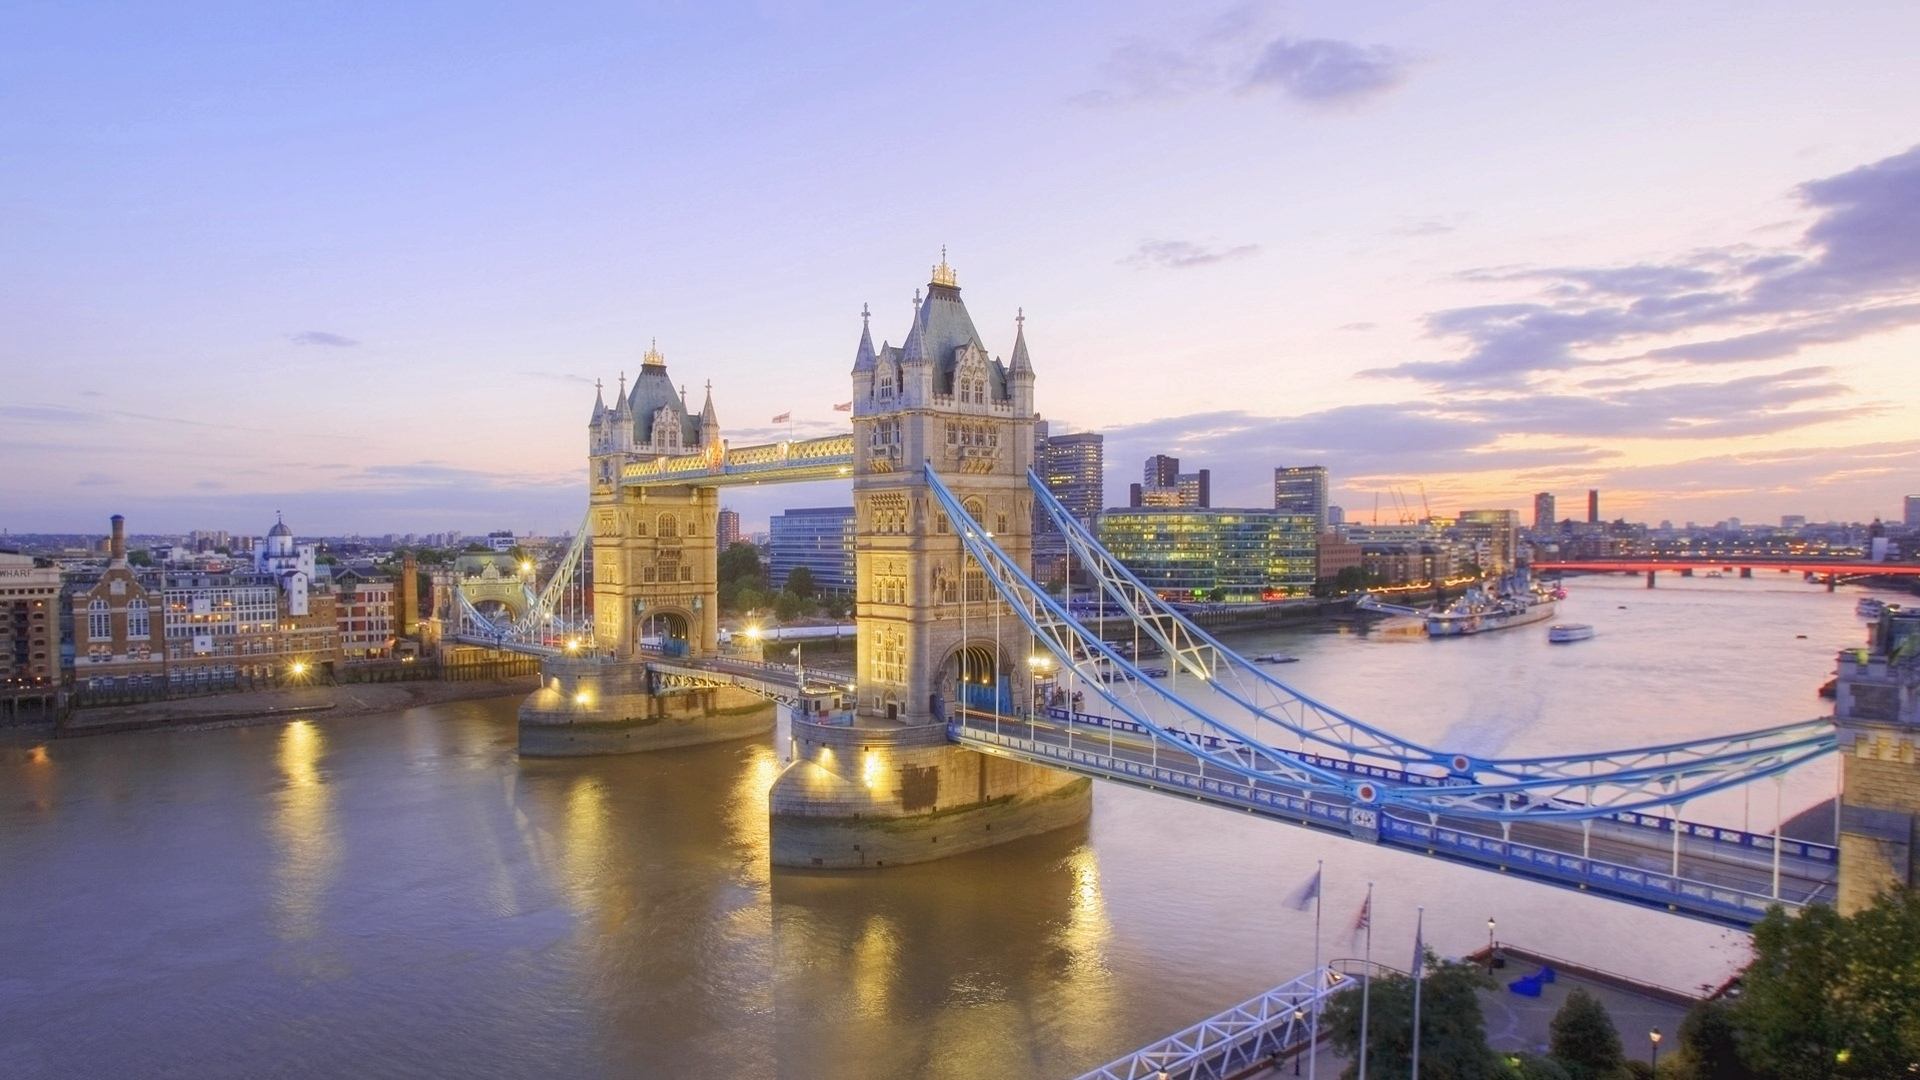 Night view of tower bridge in london image hd wallpapers night view of tower bridge in london image thecheapjerseys Gallery